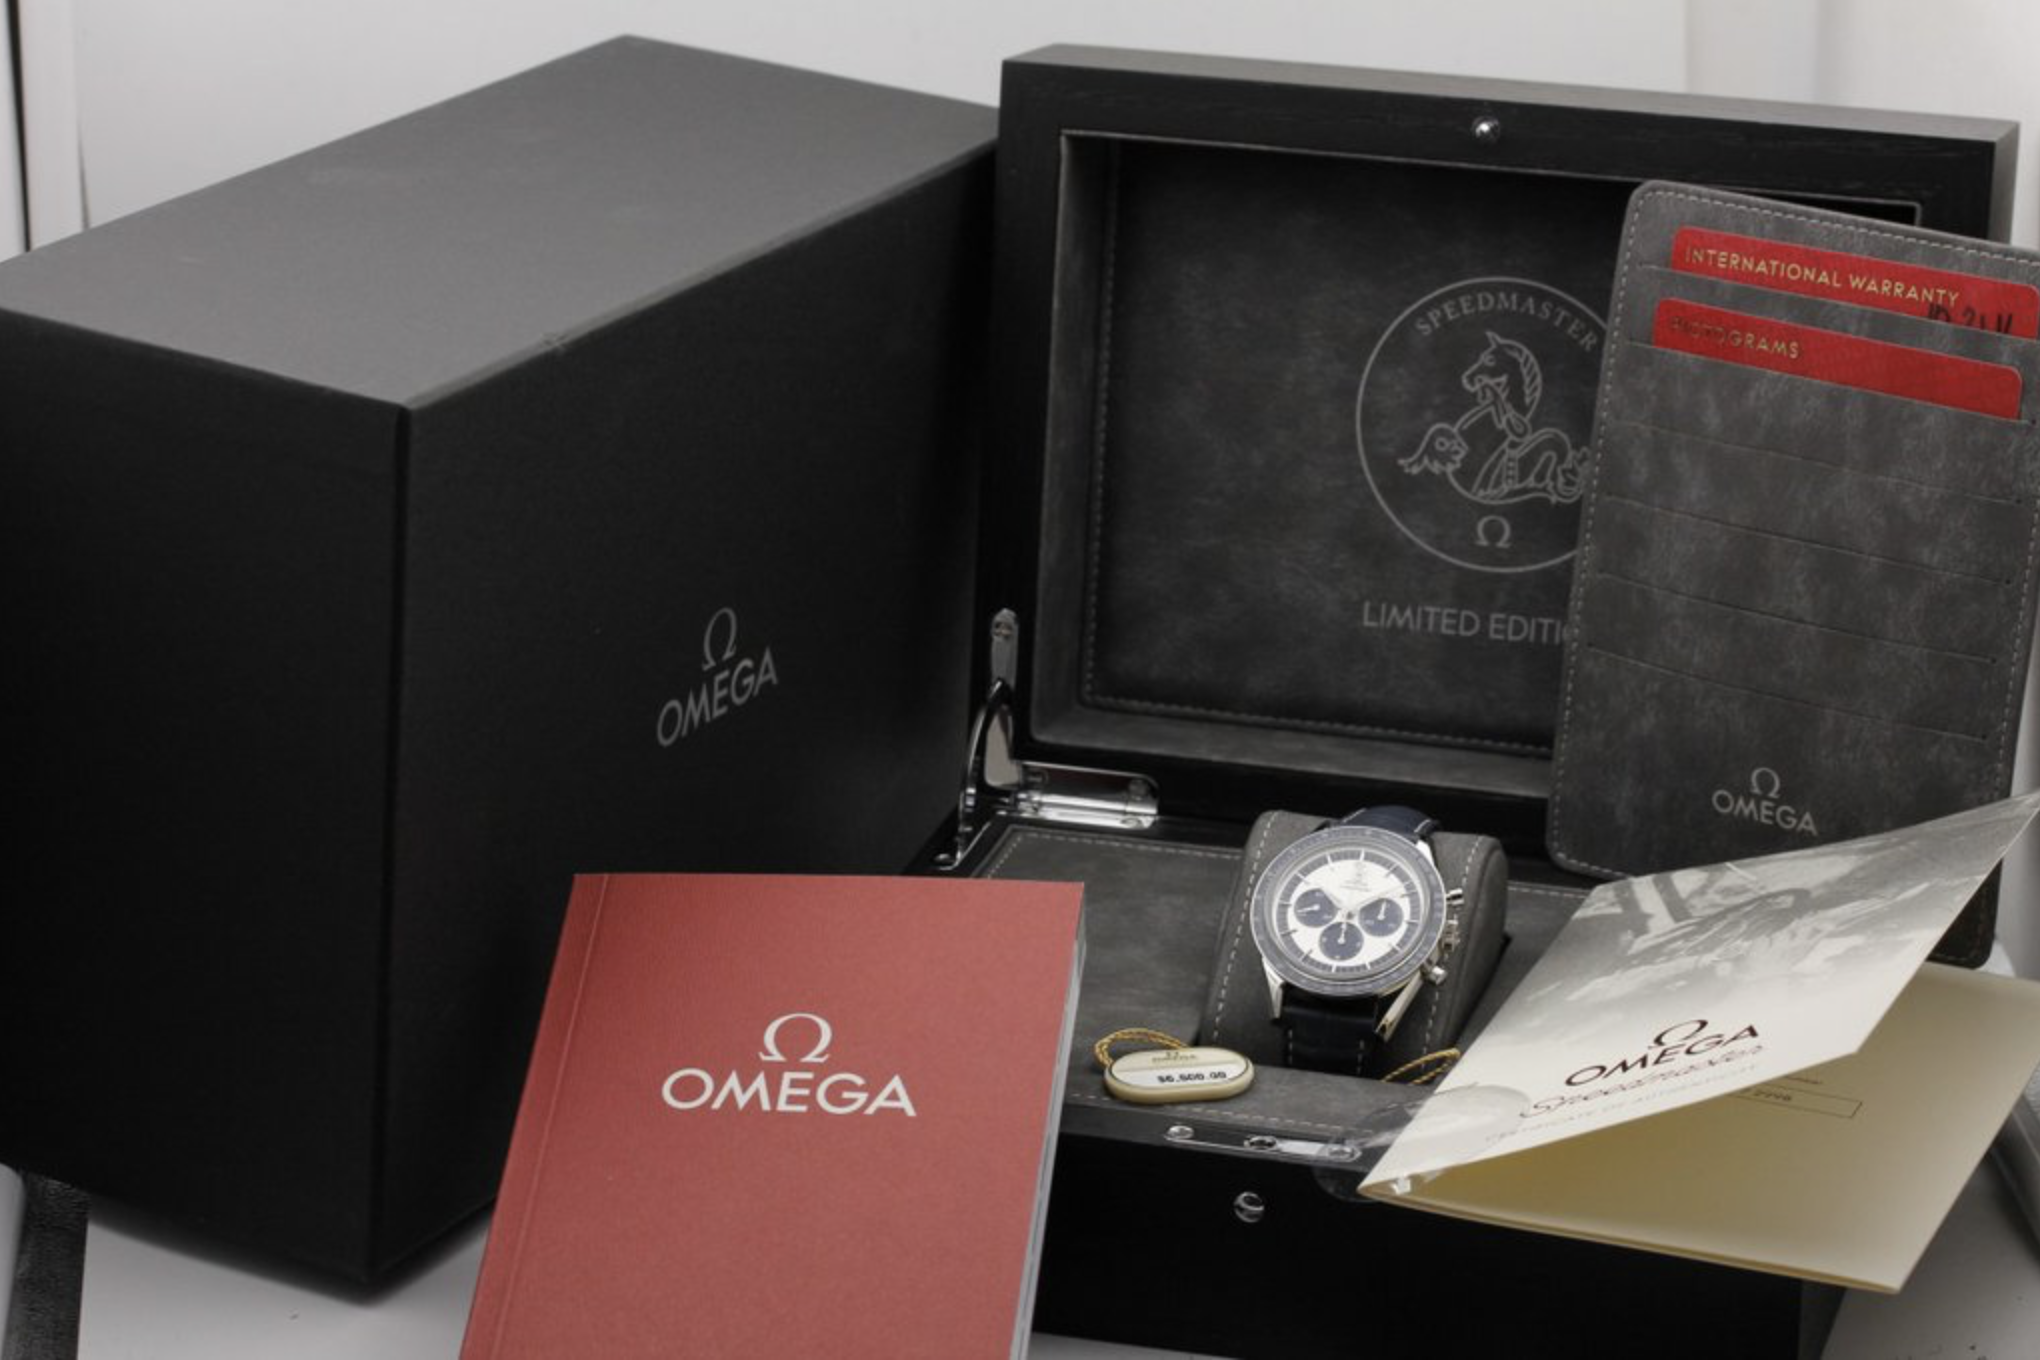 Omega-ck2998-box-papers